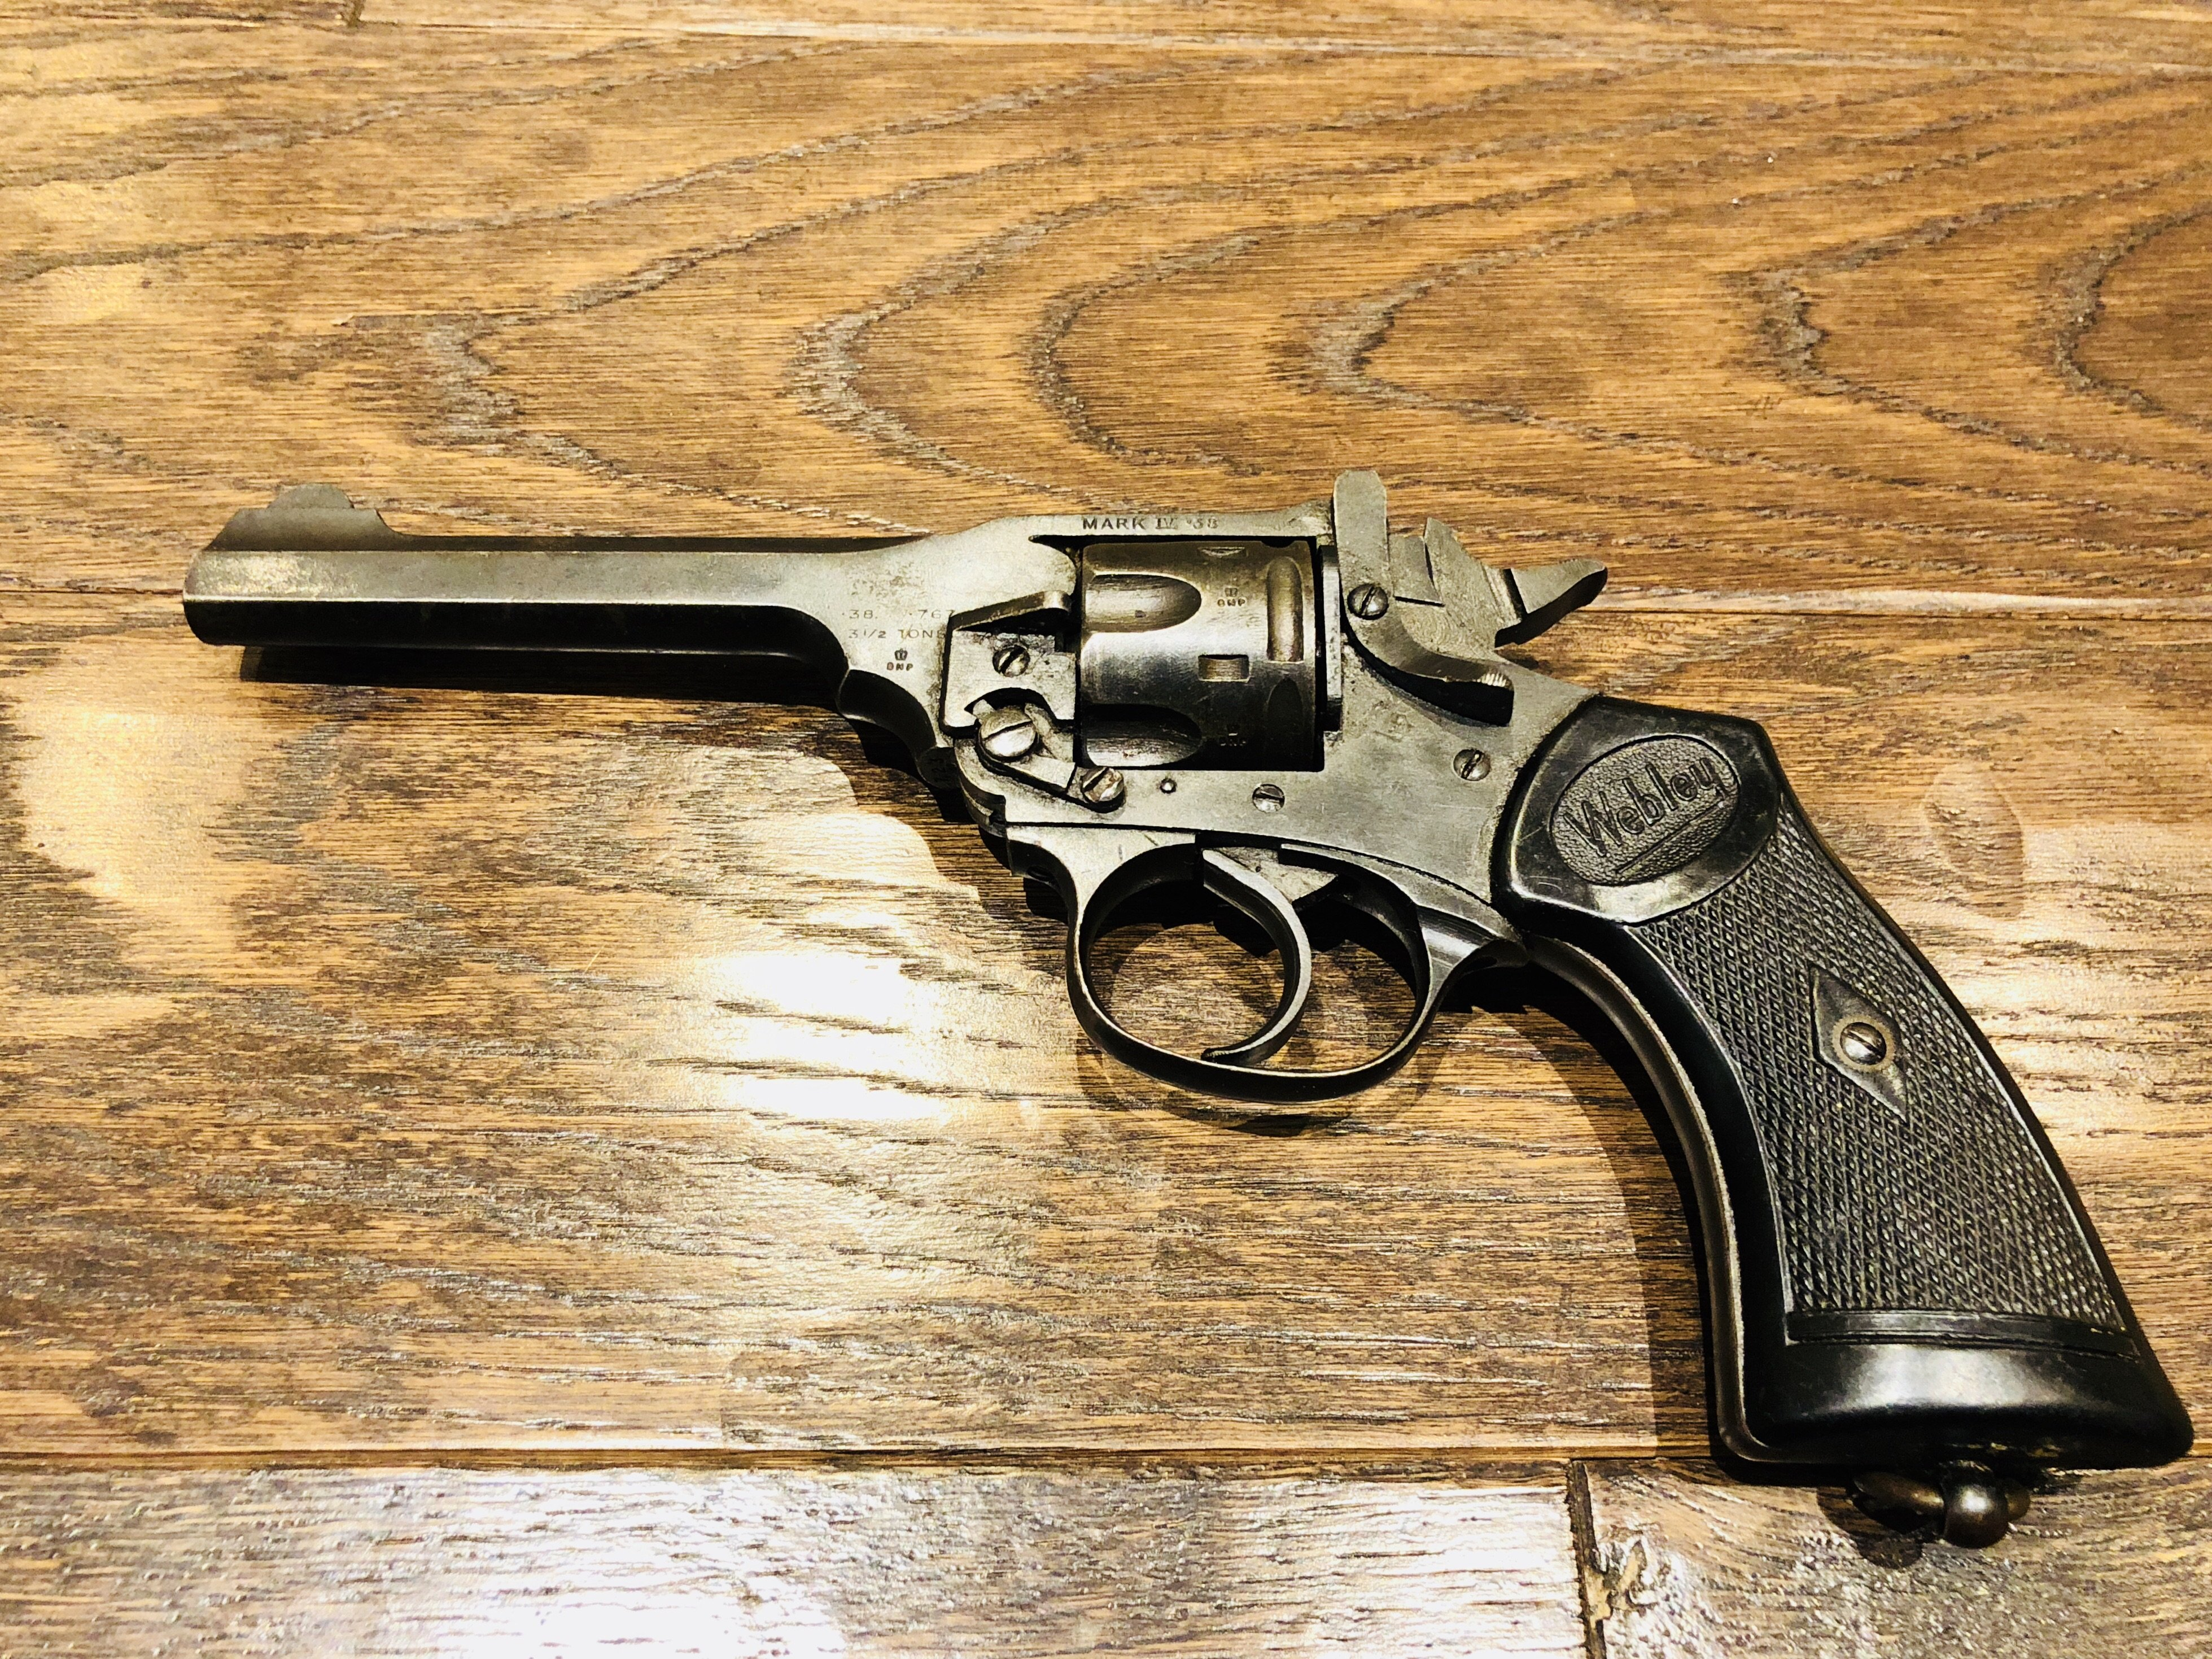 WEBLEY & SCOTT .38 S&W MARK IV LONG BARREL